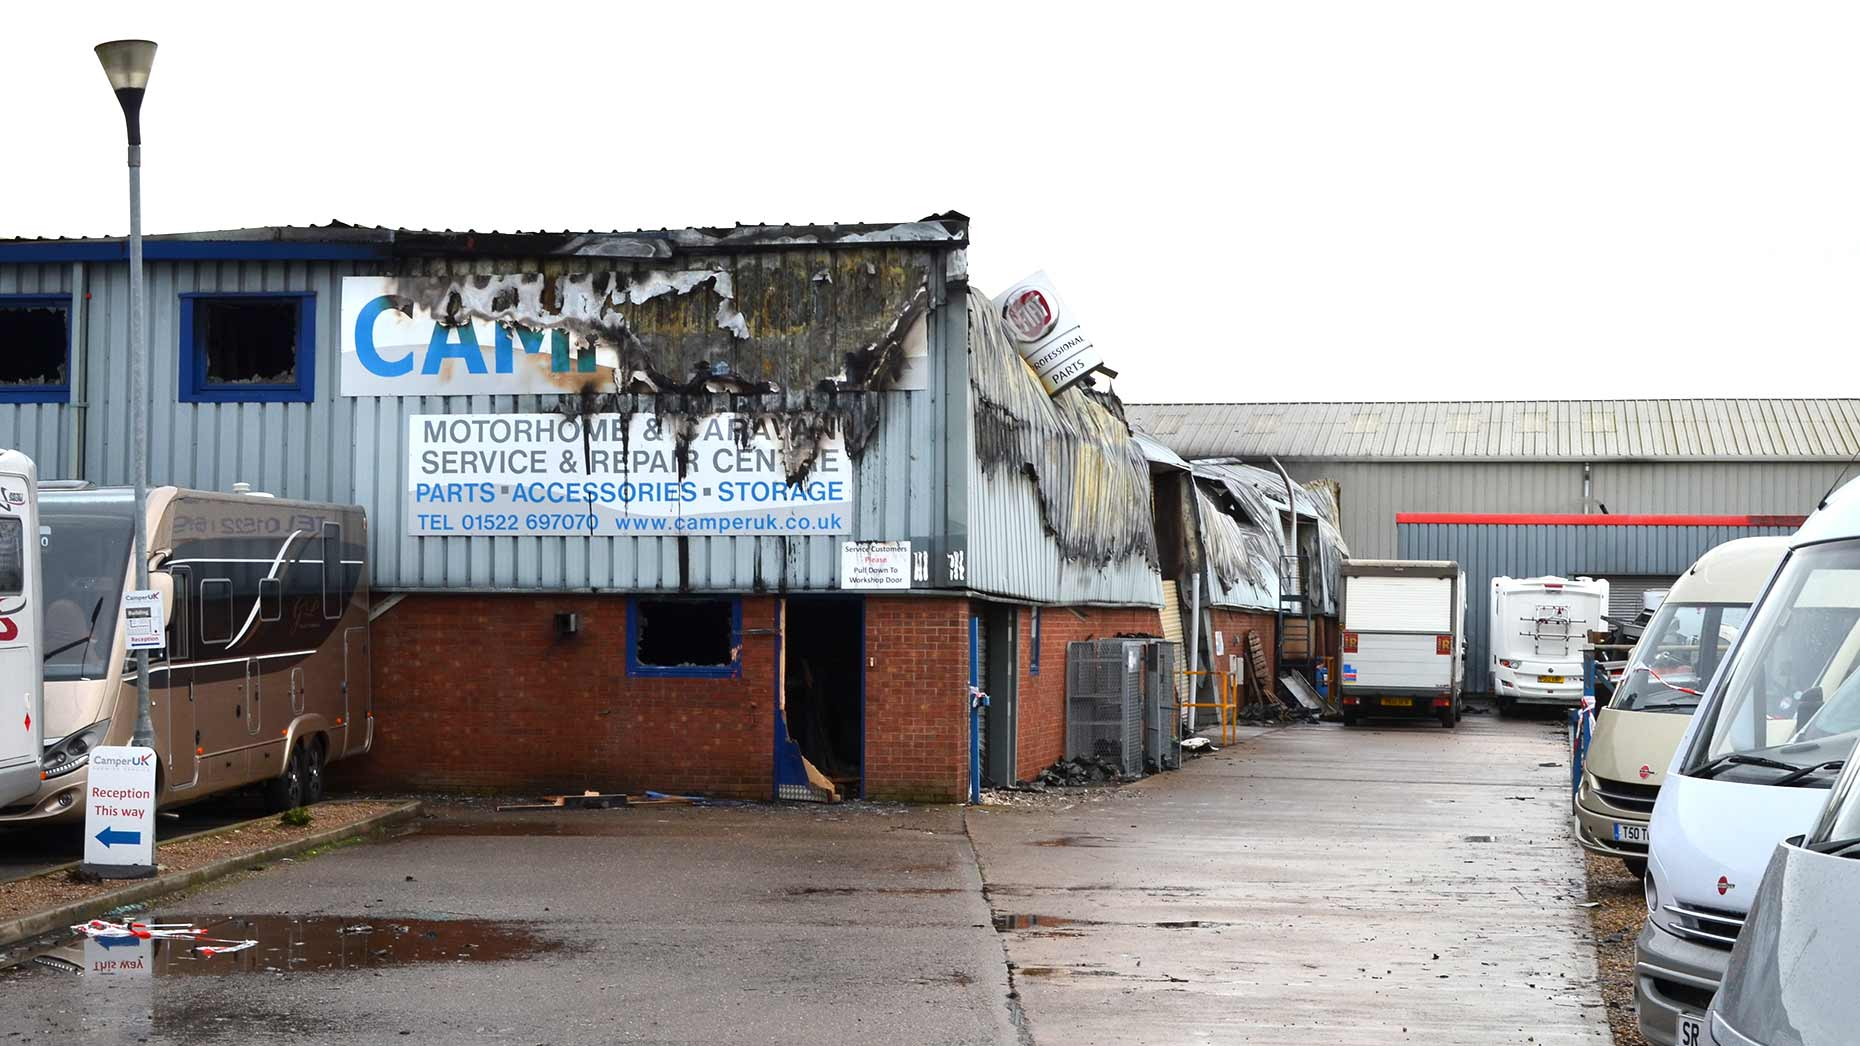 The damage at the Camper UK premises on Station Road in Lincoln.